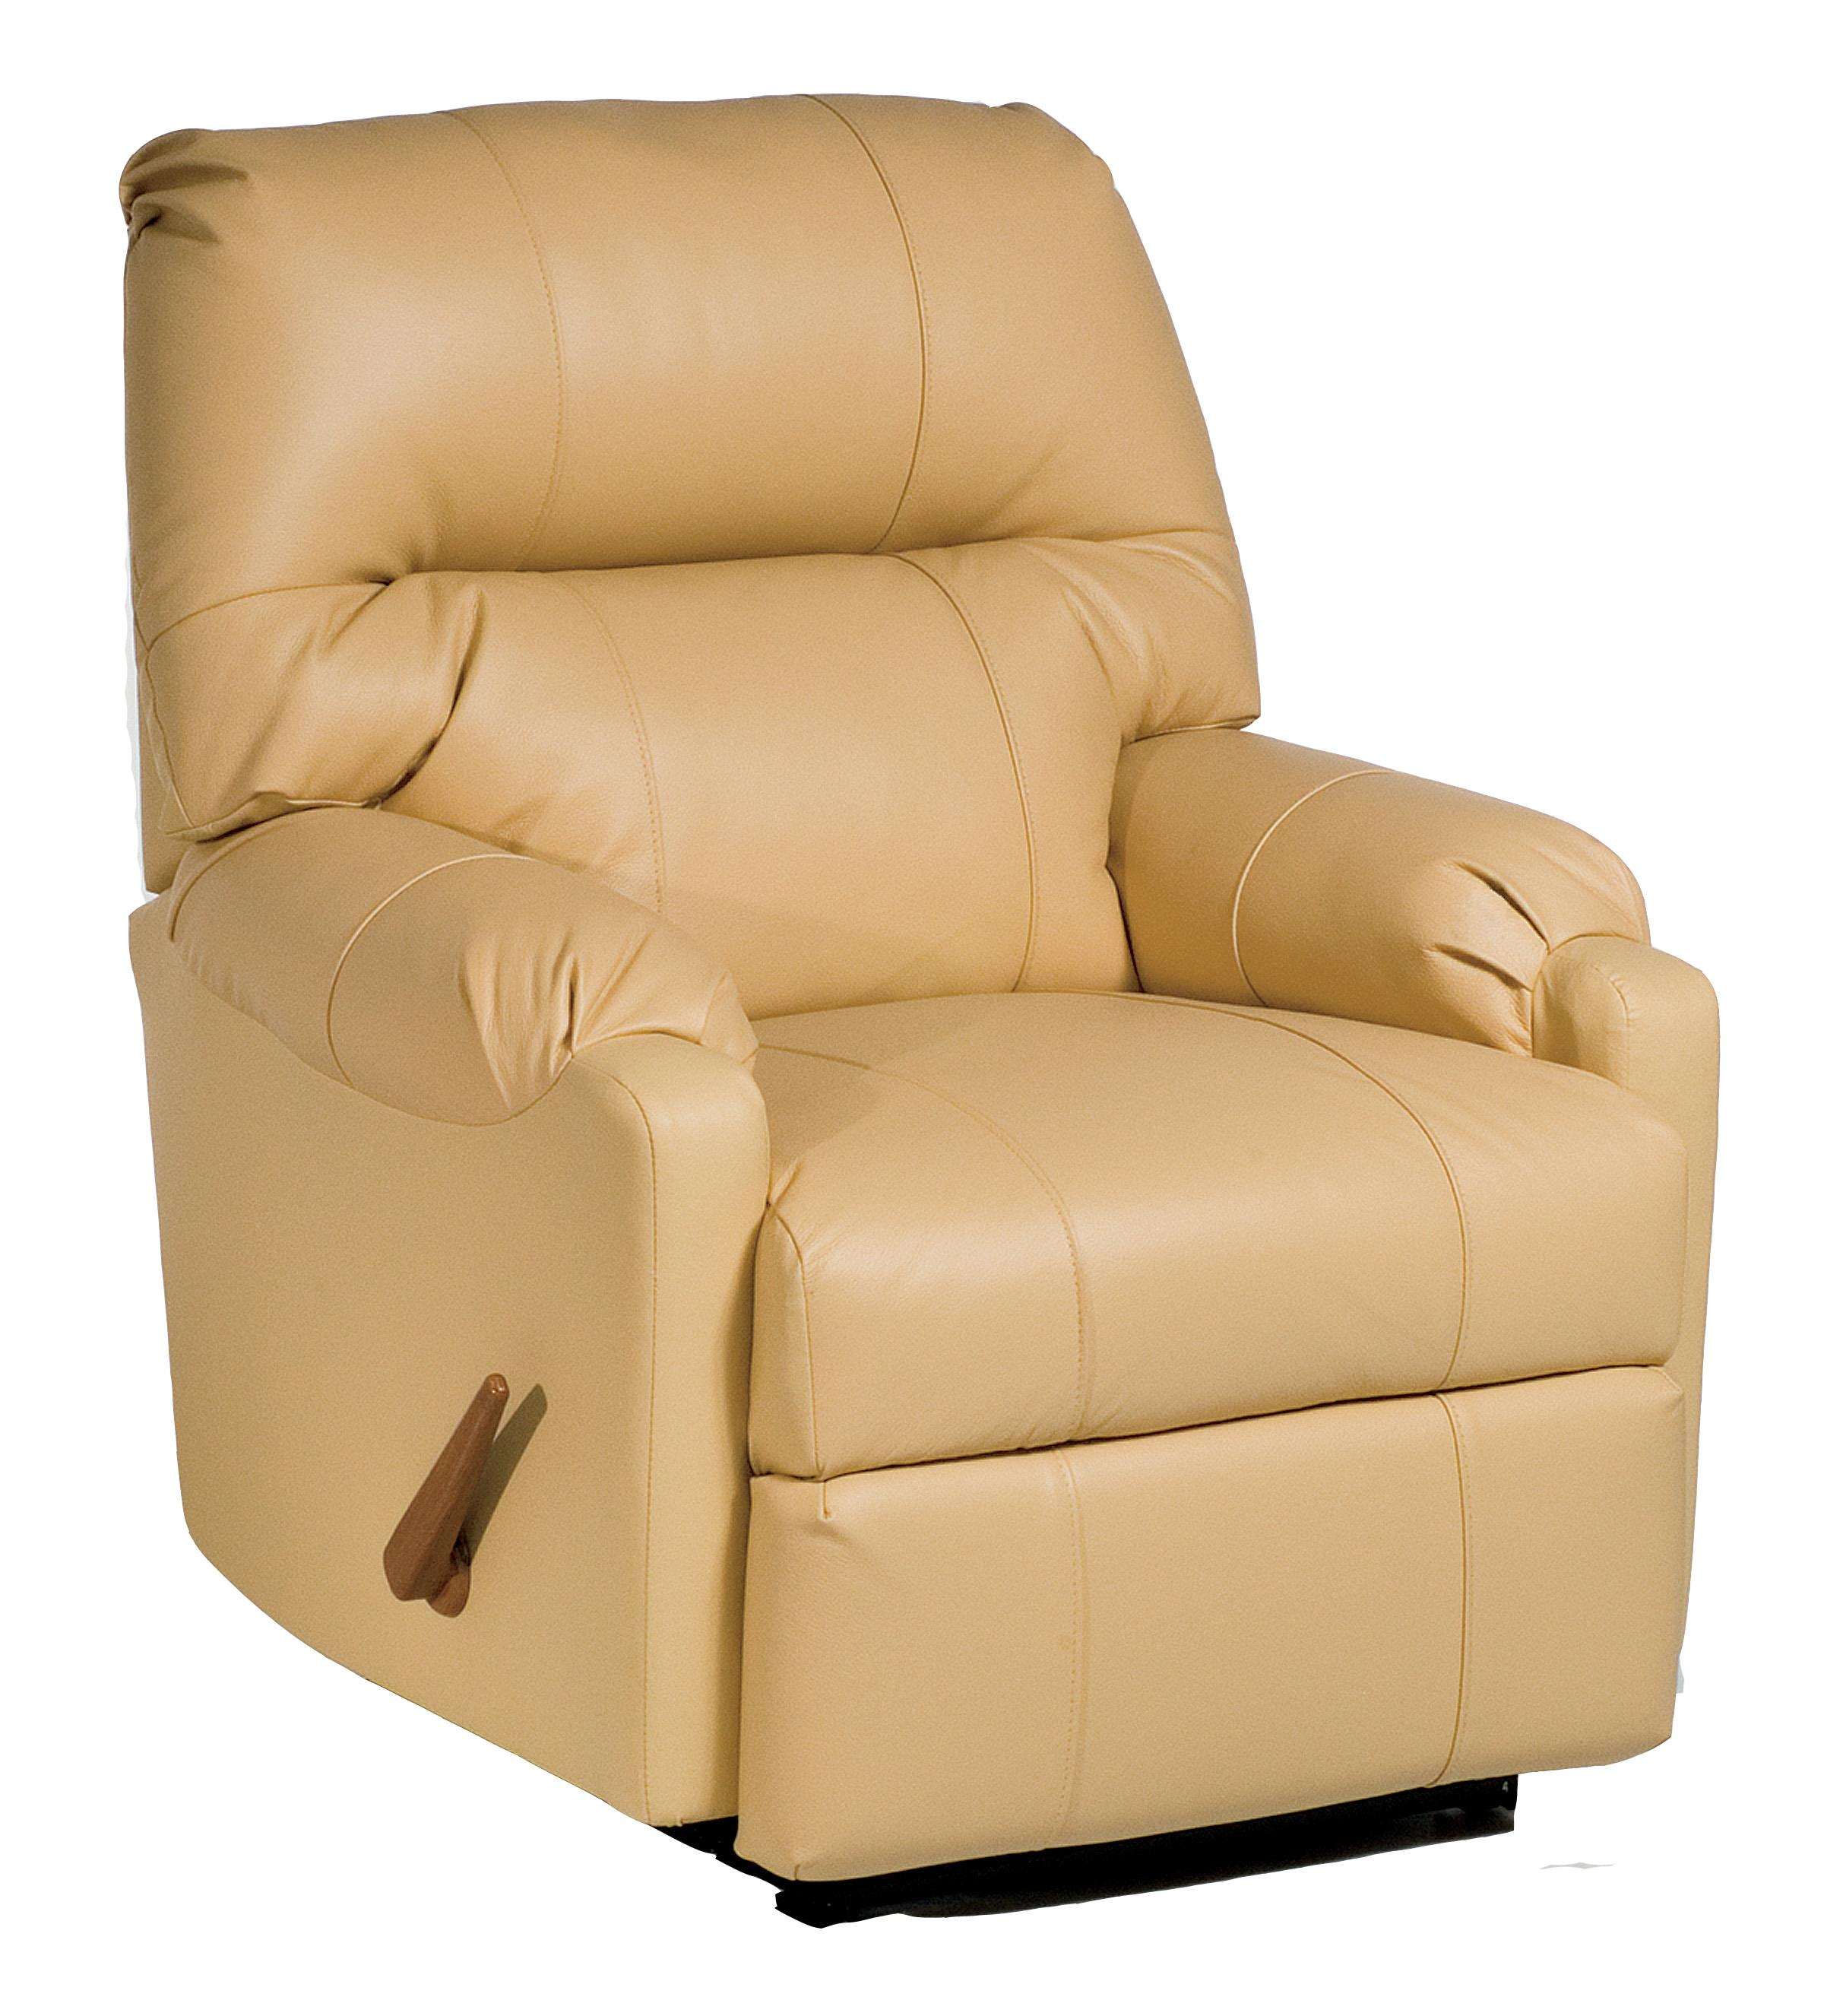 Best home furnishings recliners petite 1aw37lv jojo for Best furnishings